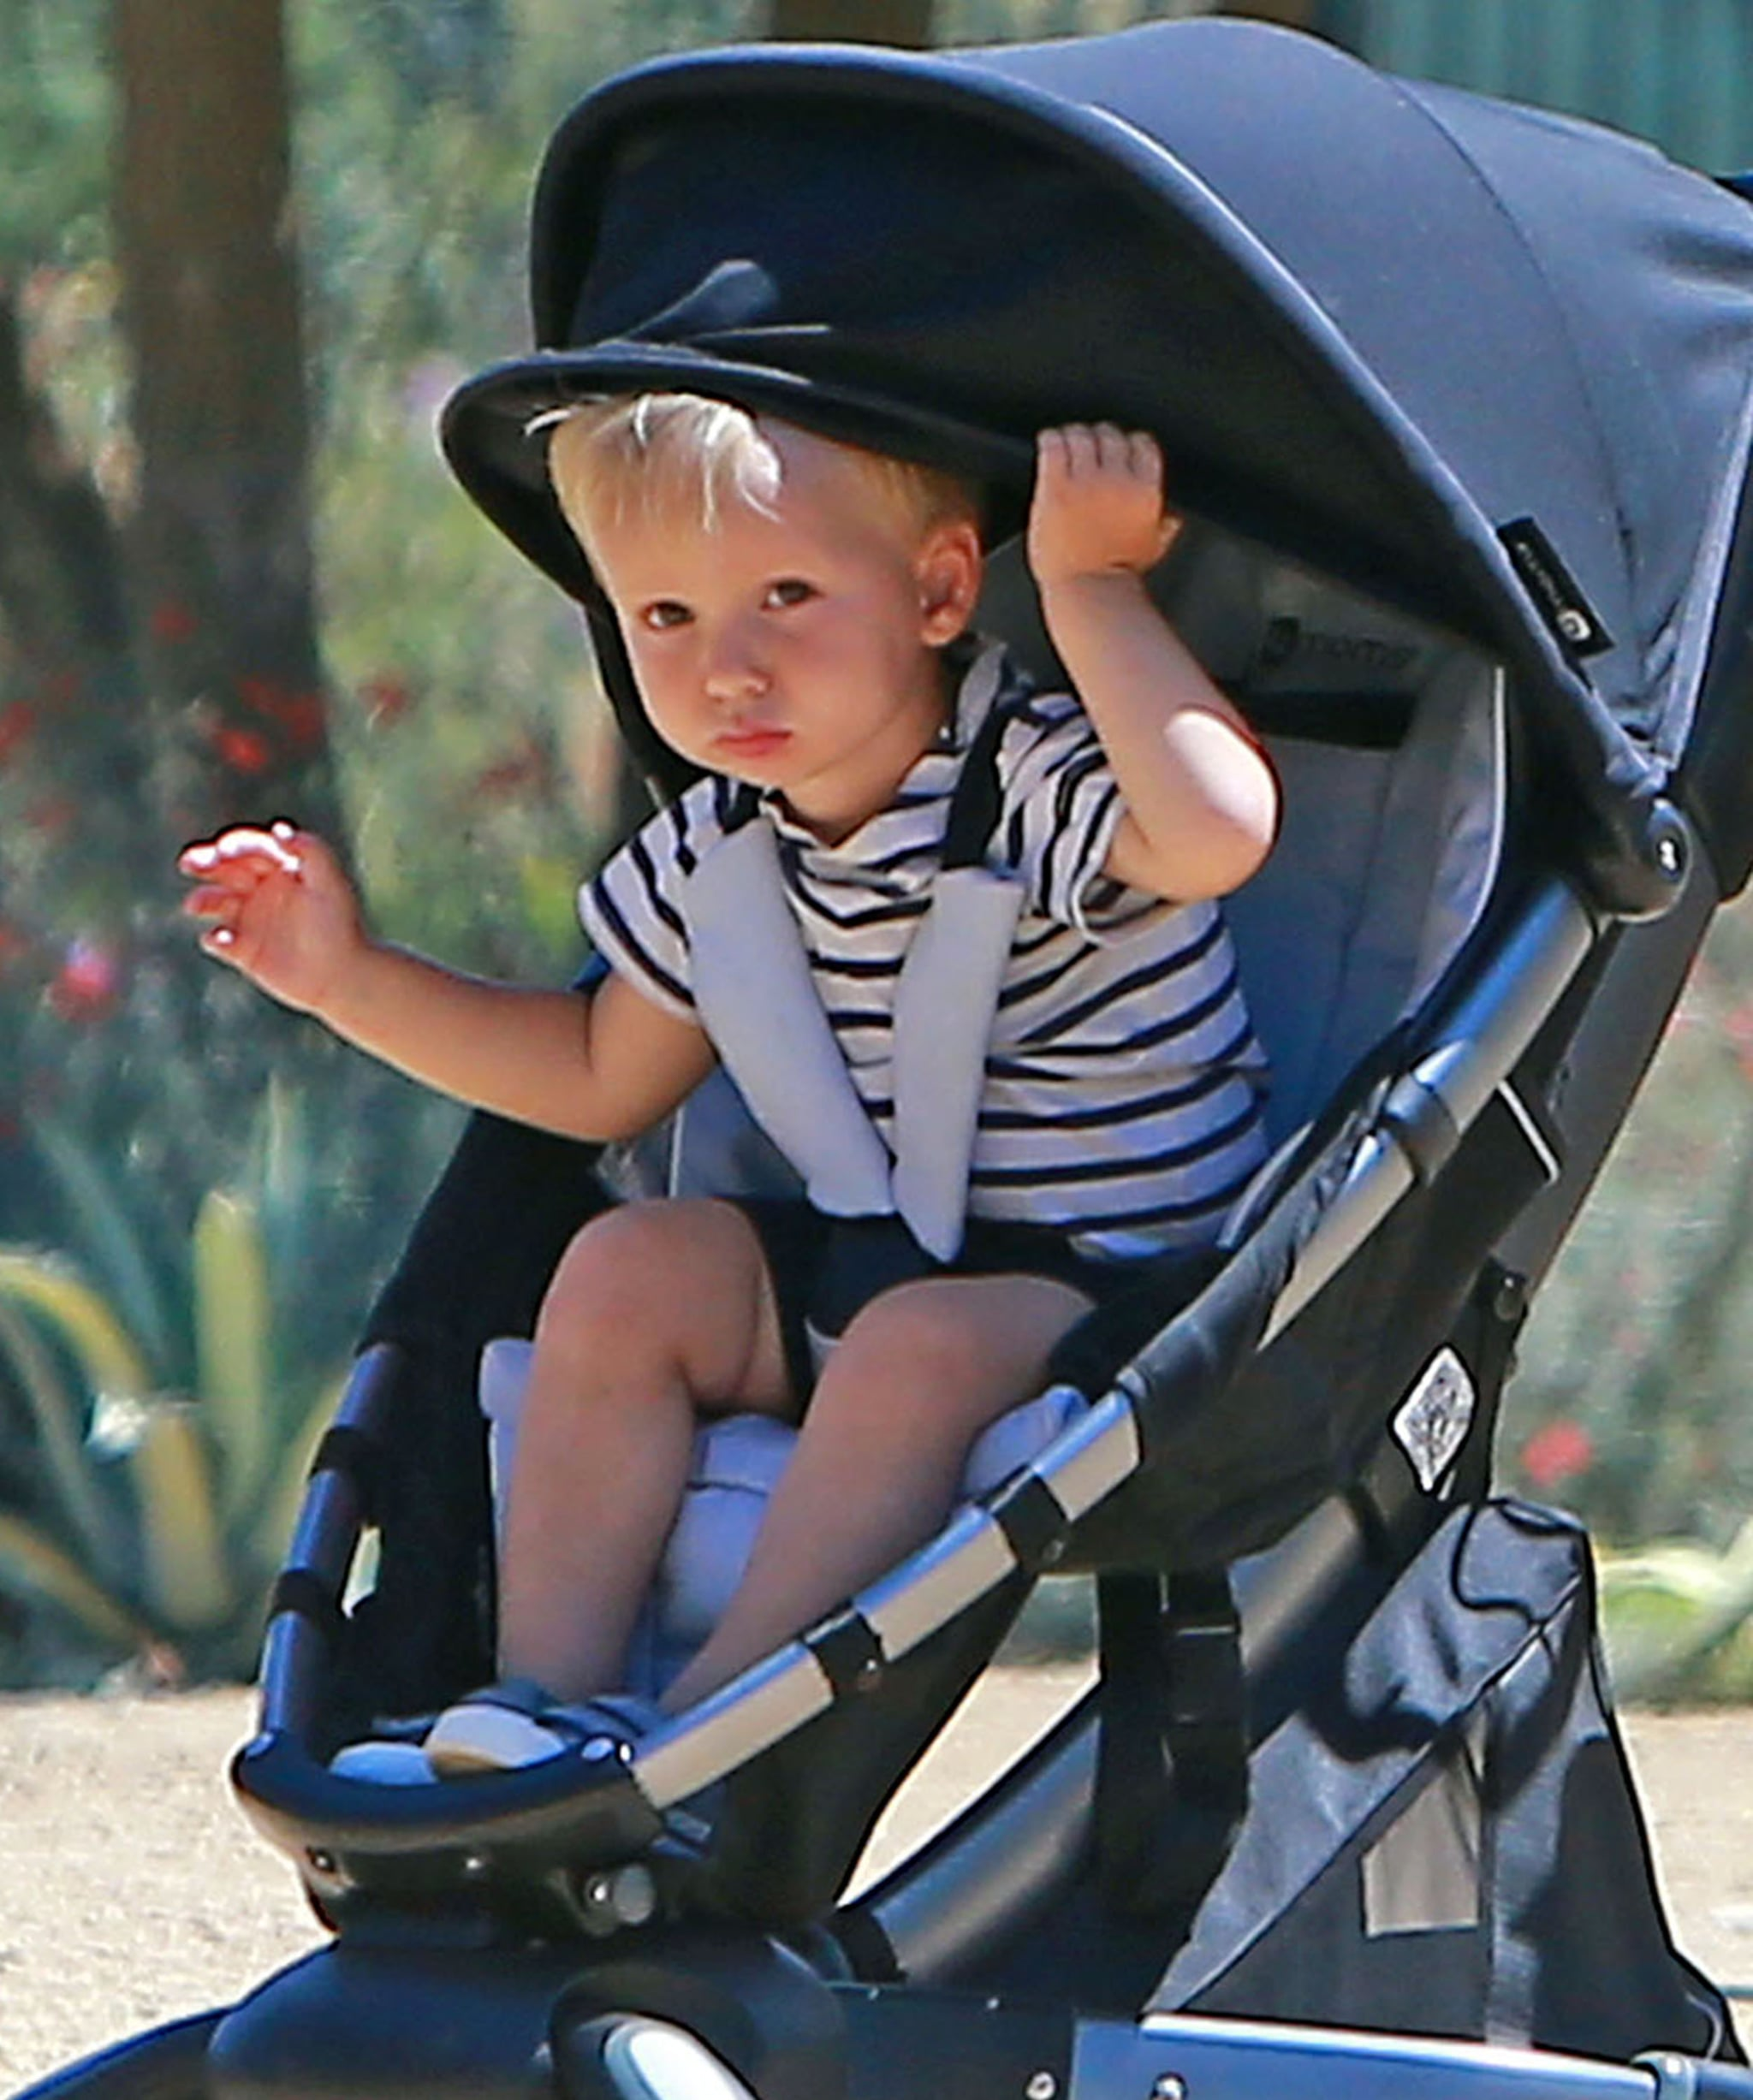 Aleph Millepied rode in his stroller at the museum.